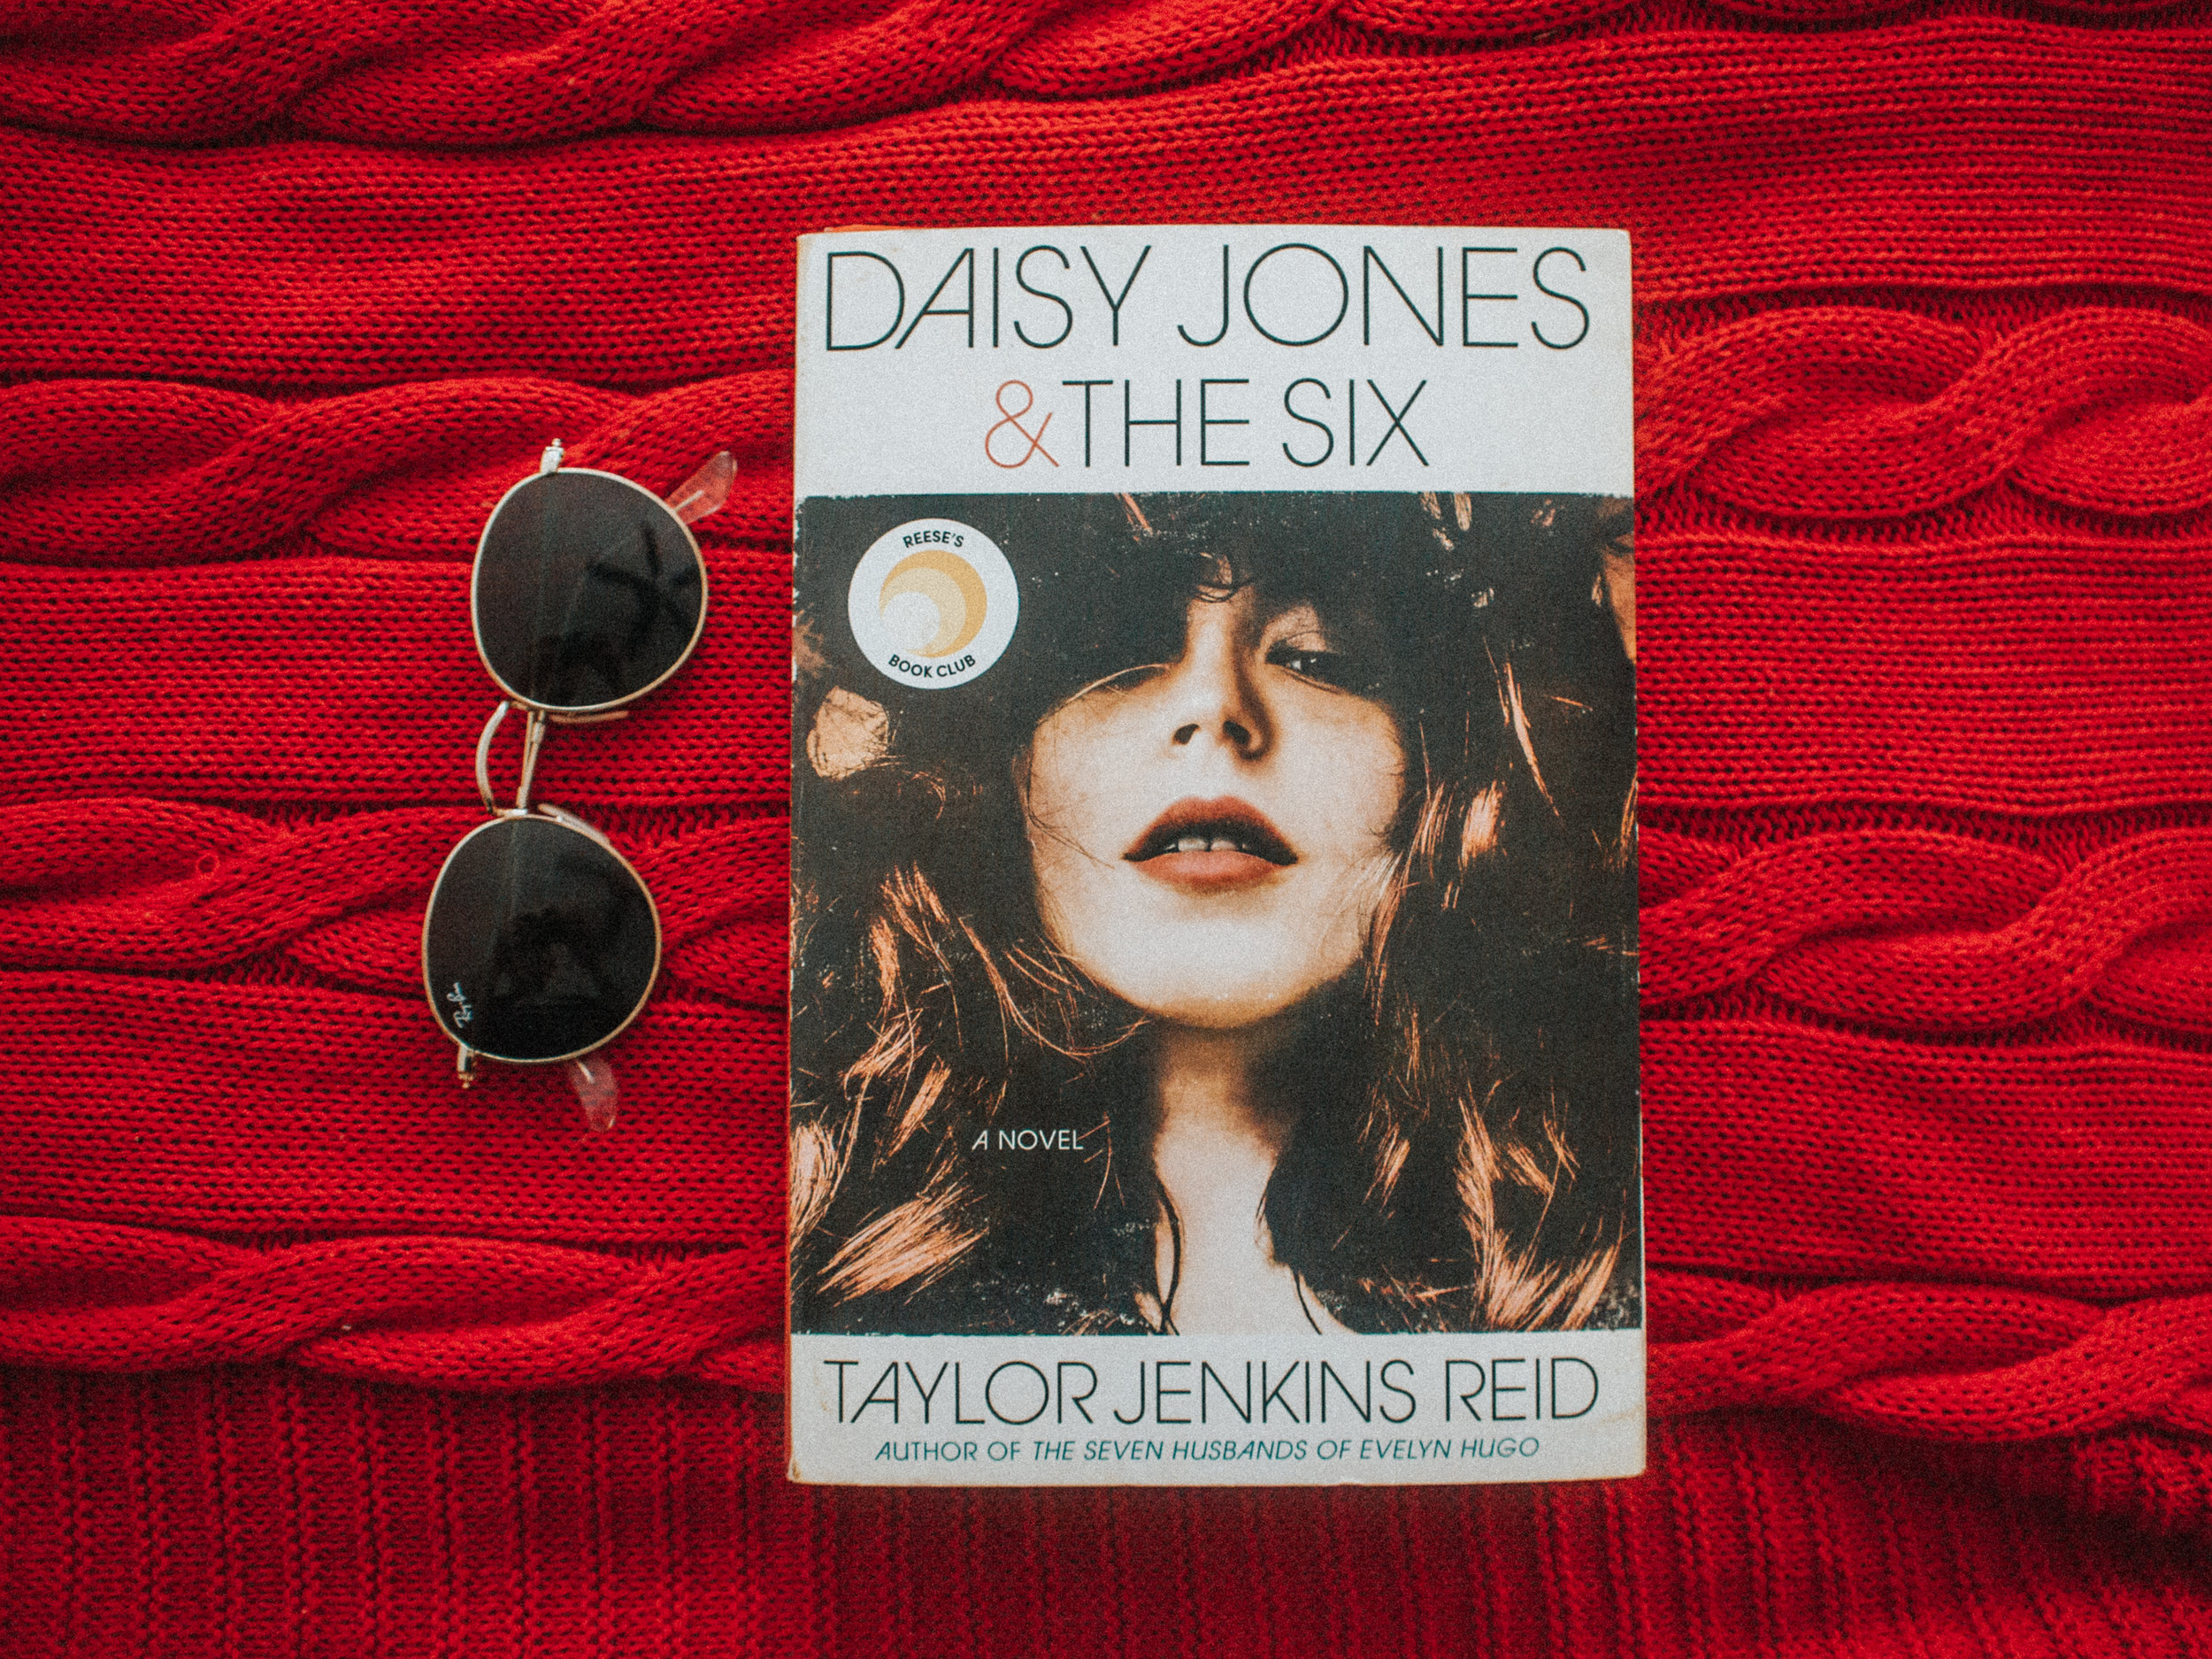 Daisy Jones and the Six by Taylor Jenkins Reid - Reese Witherspoon's Book Club - Hello Sunshine - Penguin Random House - Ballastine Books